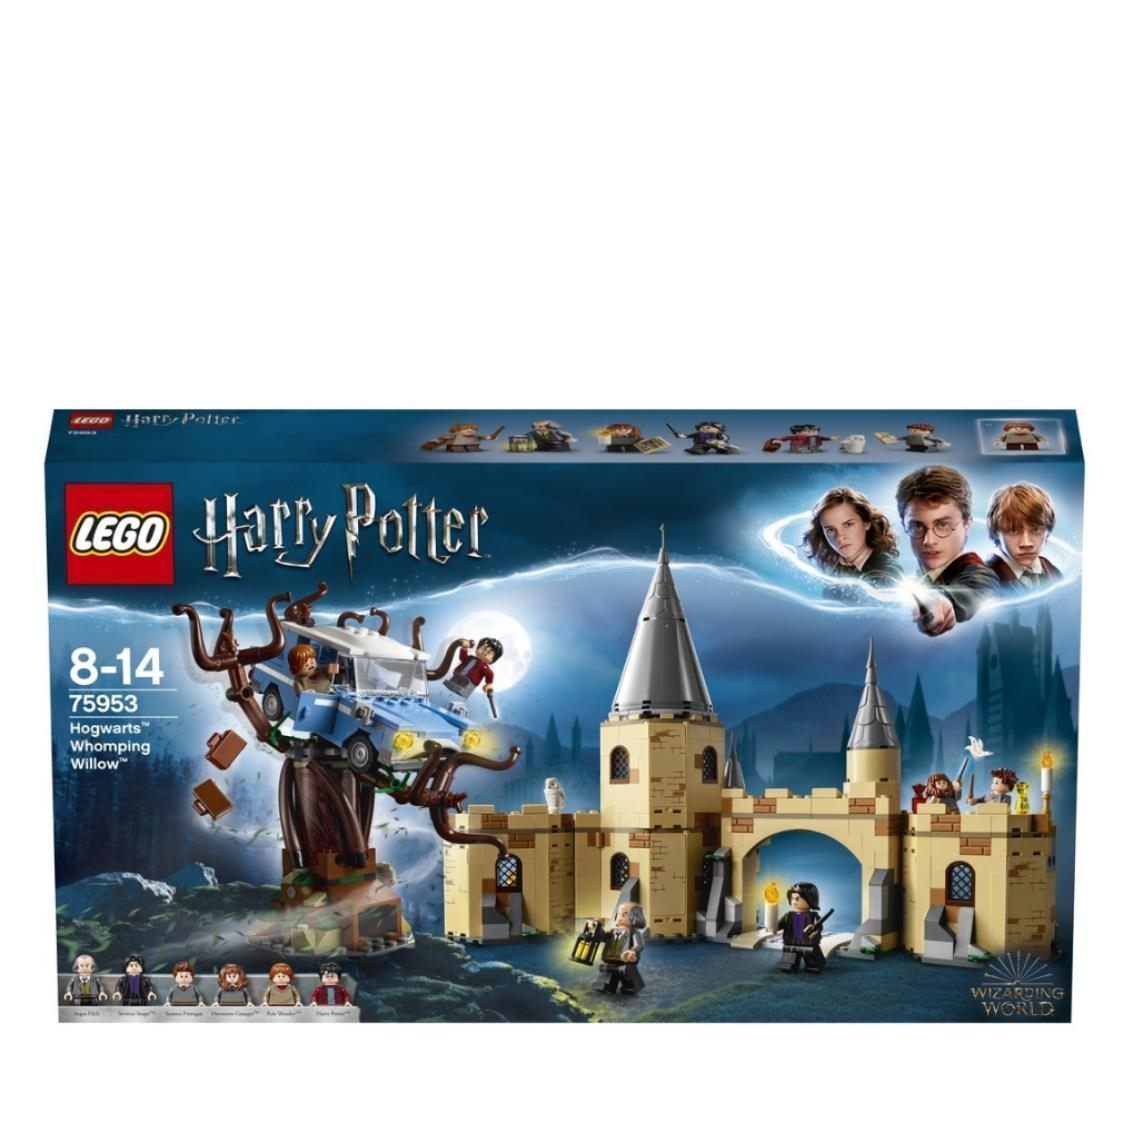 Hogwarts Whomping Willow 75953